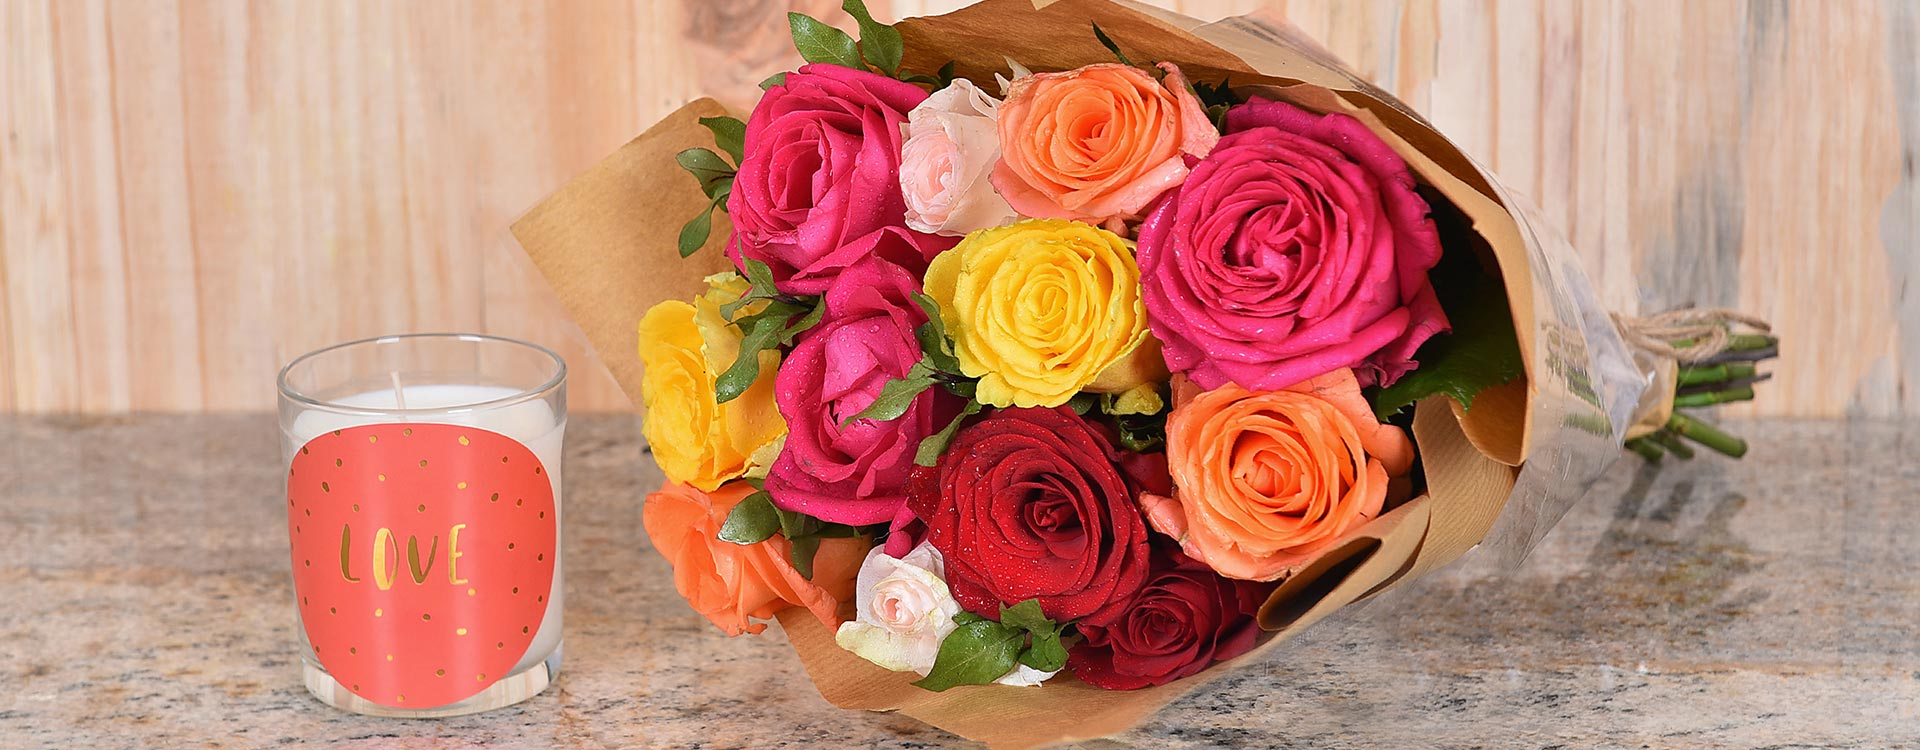 Order A Bouquet Of Roses With Candle | Hamper World